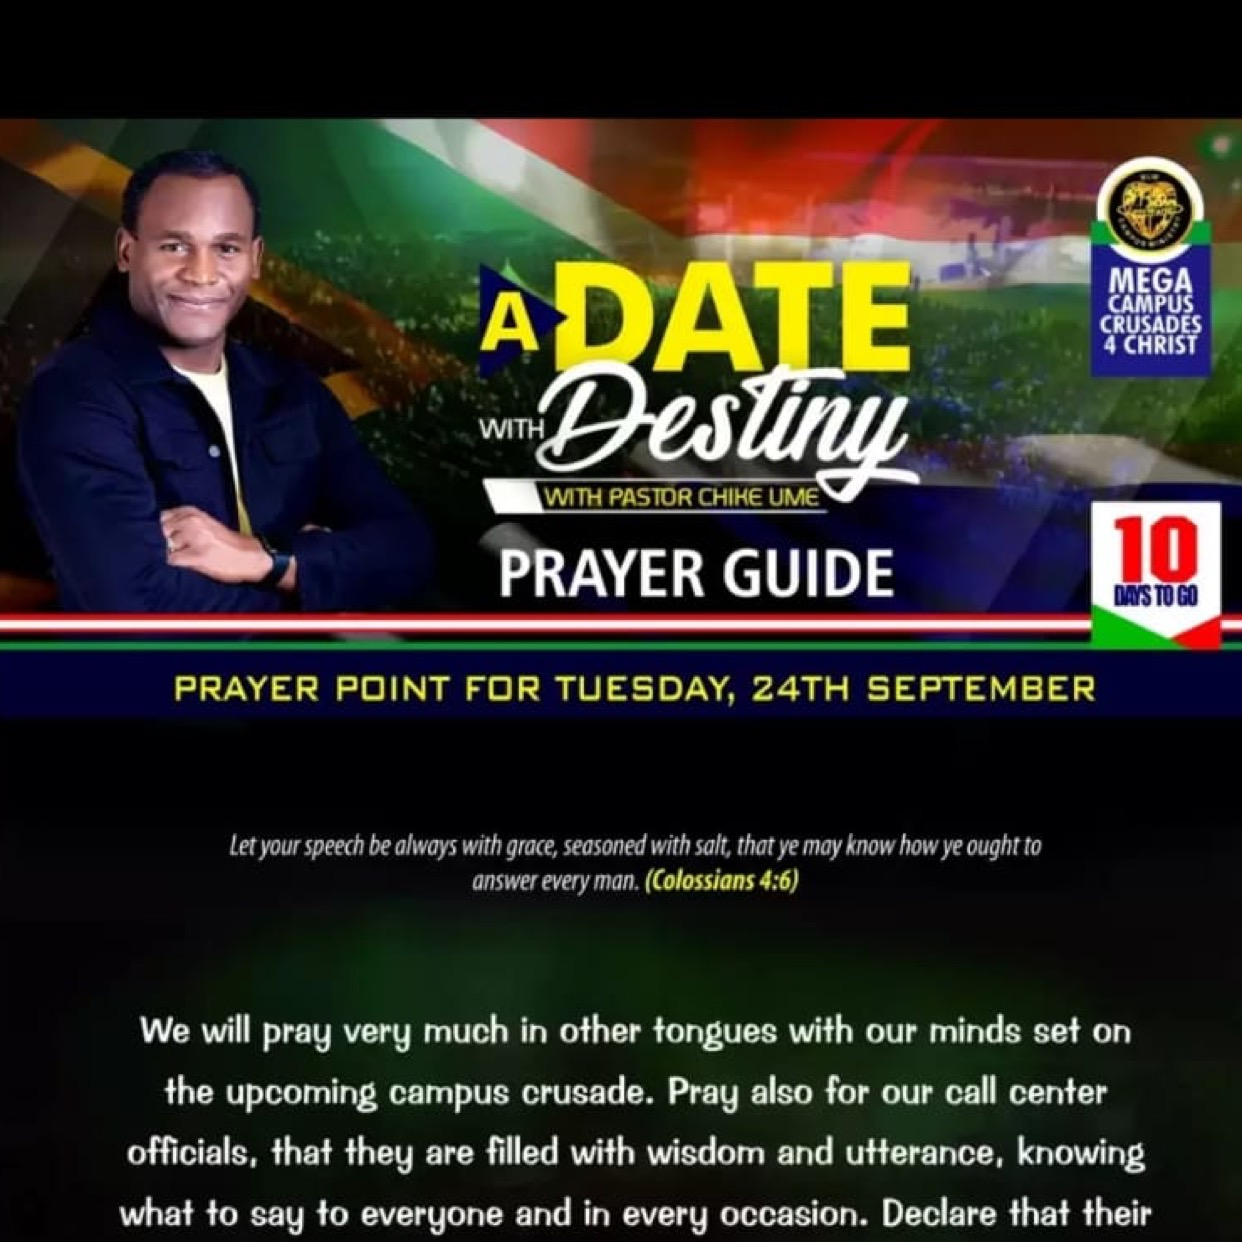 Glorious things are happening #adatewithdestiny